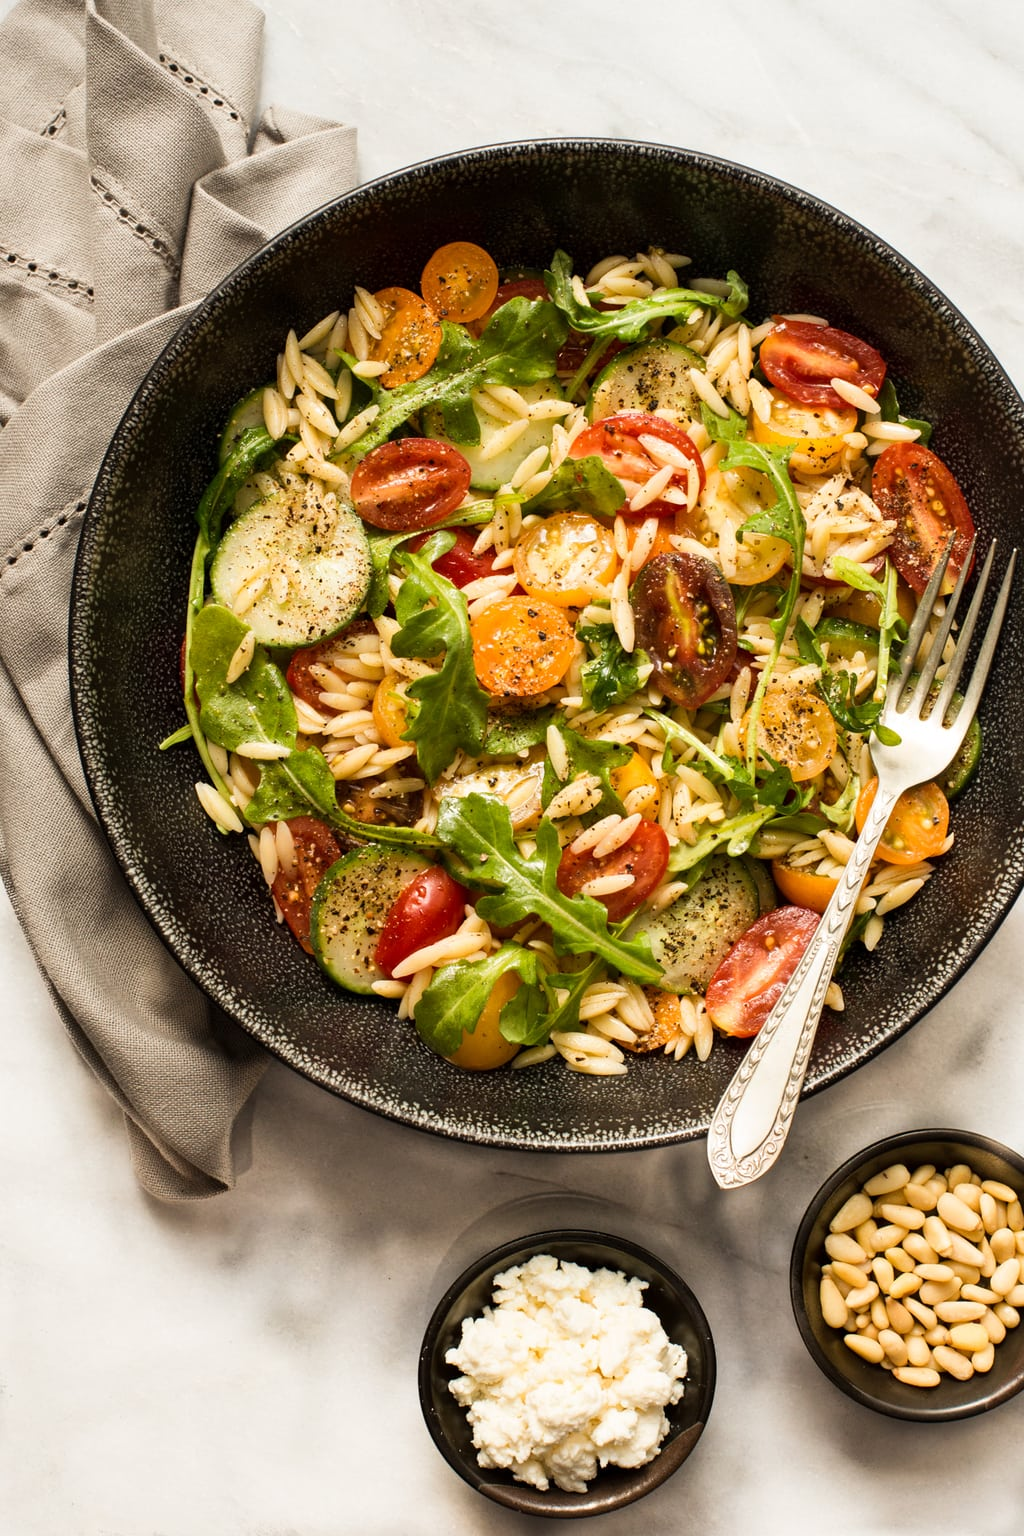 Greek Pasta Salad - If you've got a busy lifestyle but enjoy healthy, great quality, home cooked meals, try out Terra's Kitchen home food delivery service! thecafesucrefarine.com